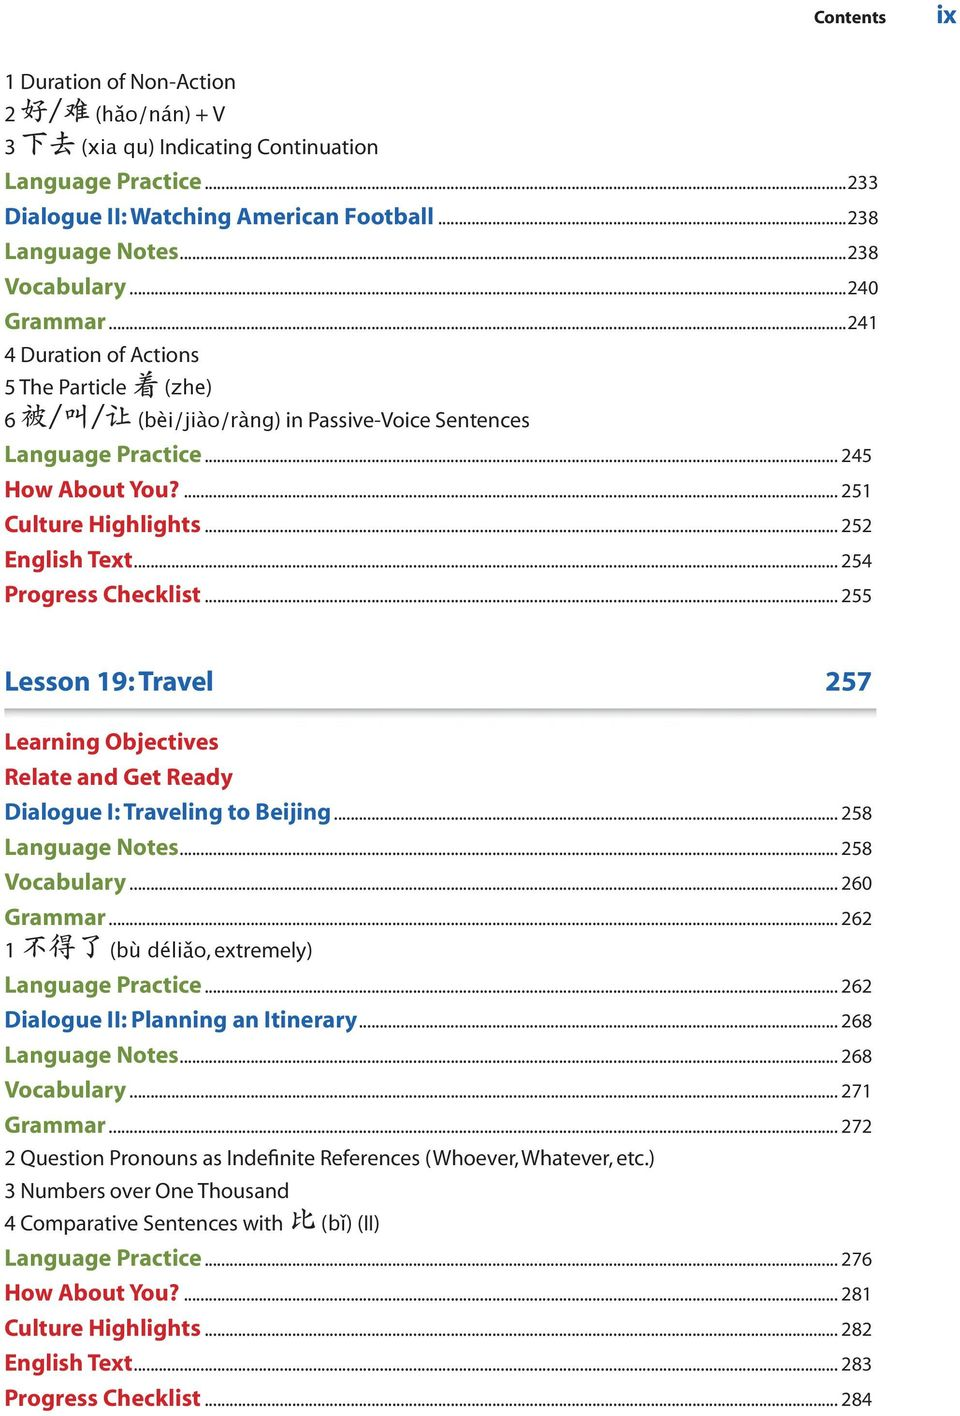 .. 252 English Text... 254 Progress Checklist... 255 Lesson 19: Travel 257 Learning Objectives Relate and Get Ready Dialogue I: Traveling to Beijing... 258 Language Notes... 258 Vocabulary.